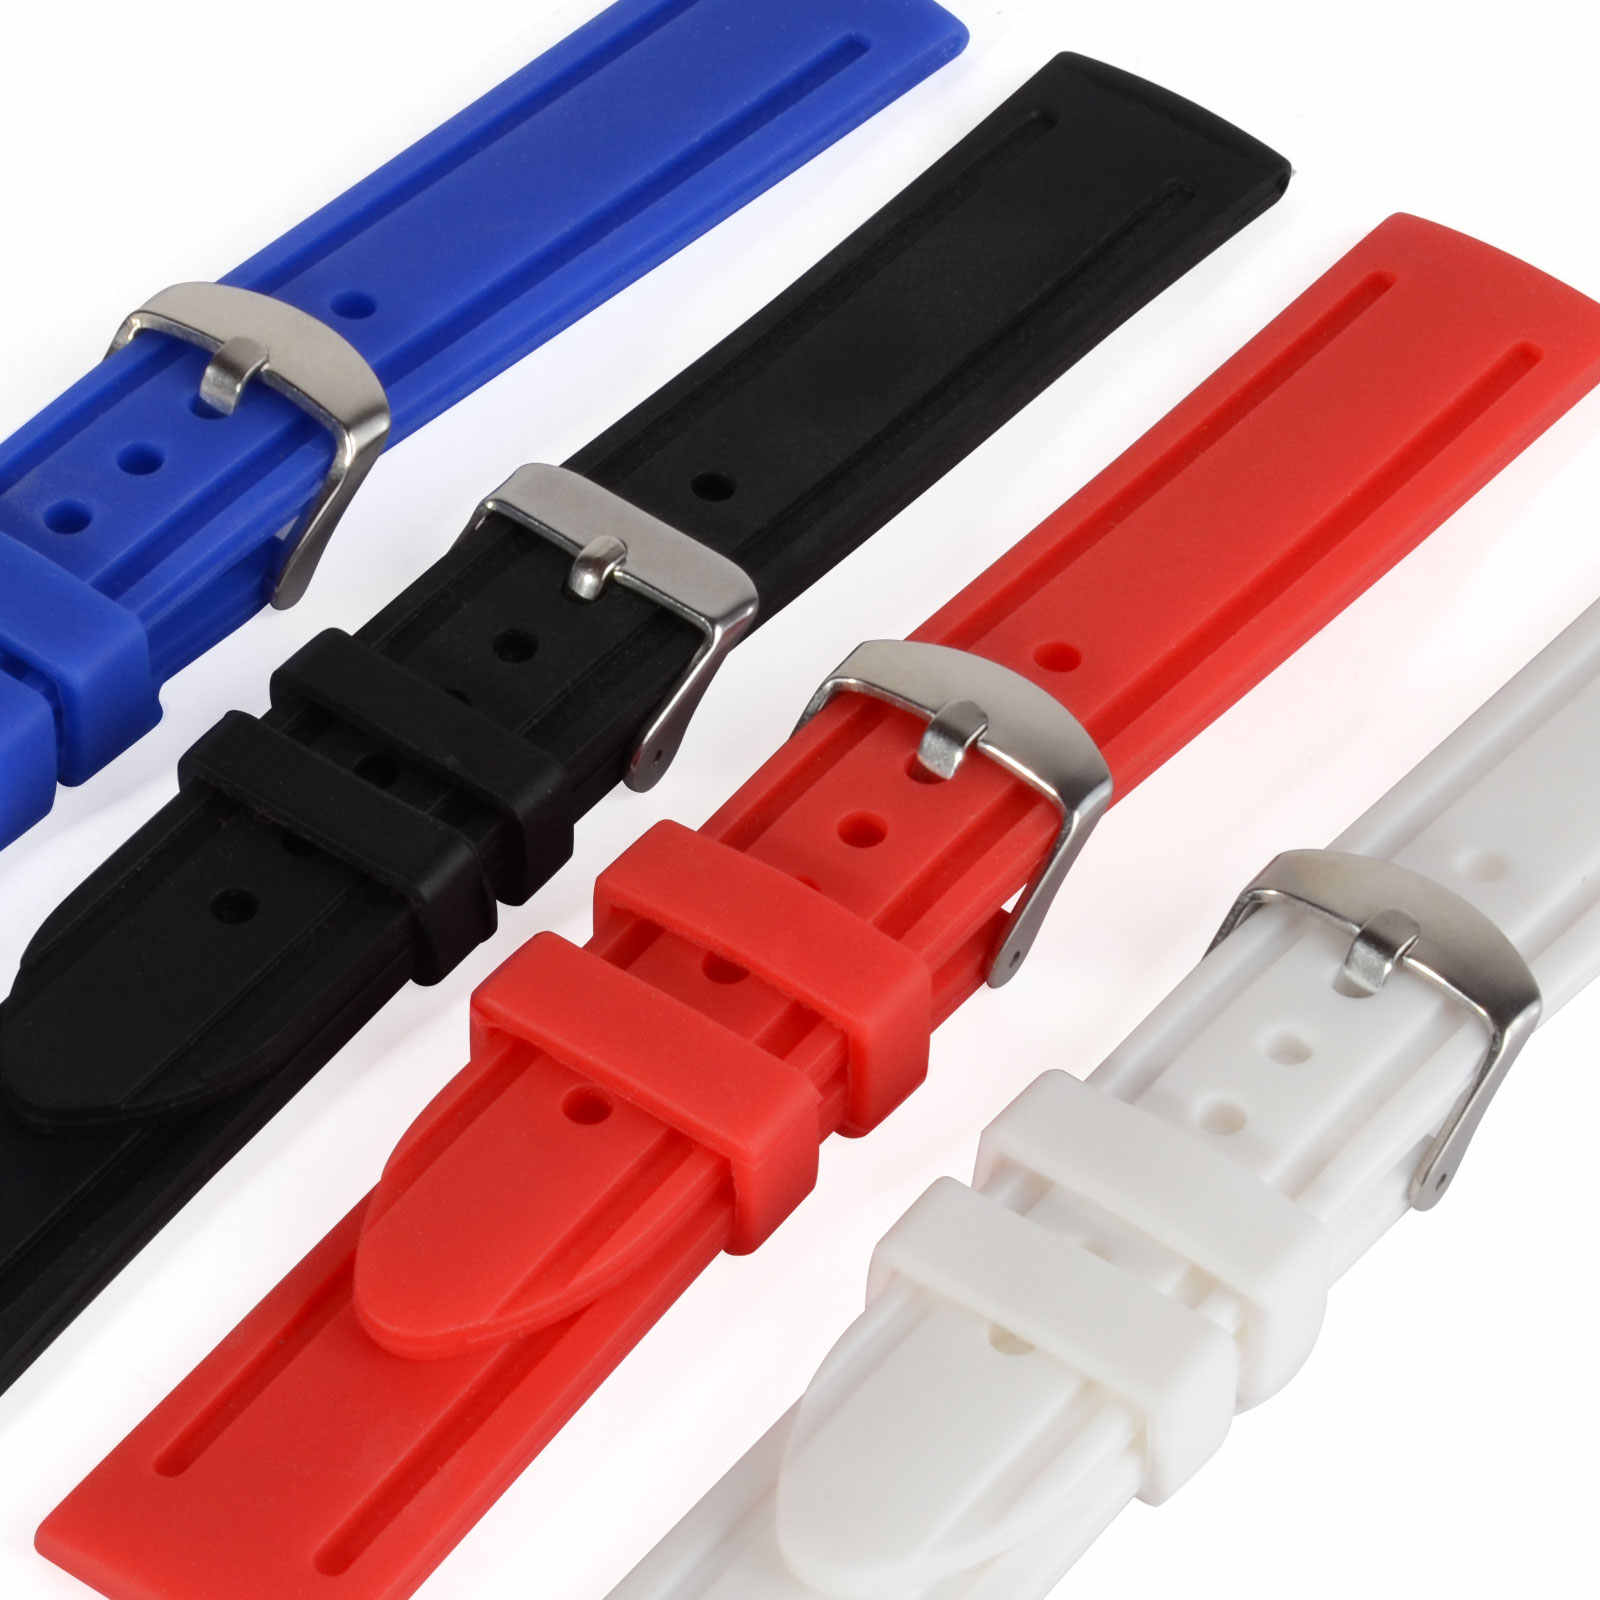 Shellhard 1pc Unisex Silicone Watch Accessories 4 Colors Wrist Watch Band Strap Sport Watch Mens Women 20mm 22mm 24mm